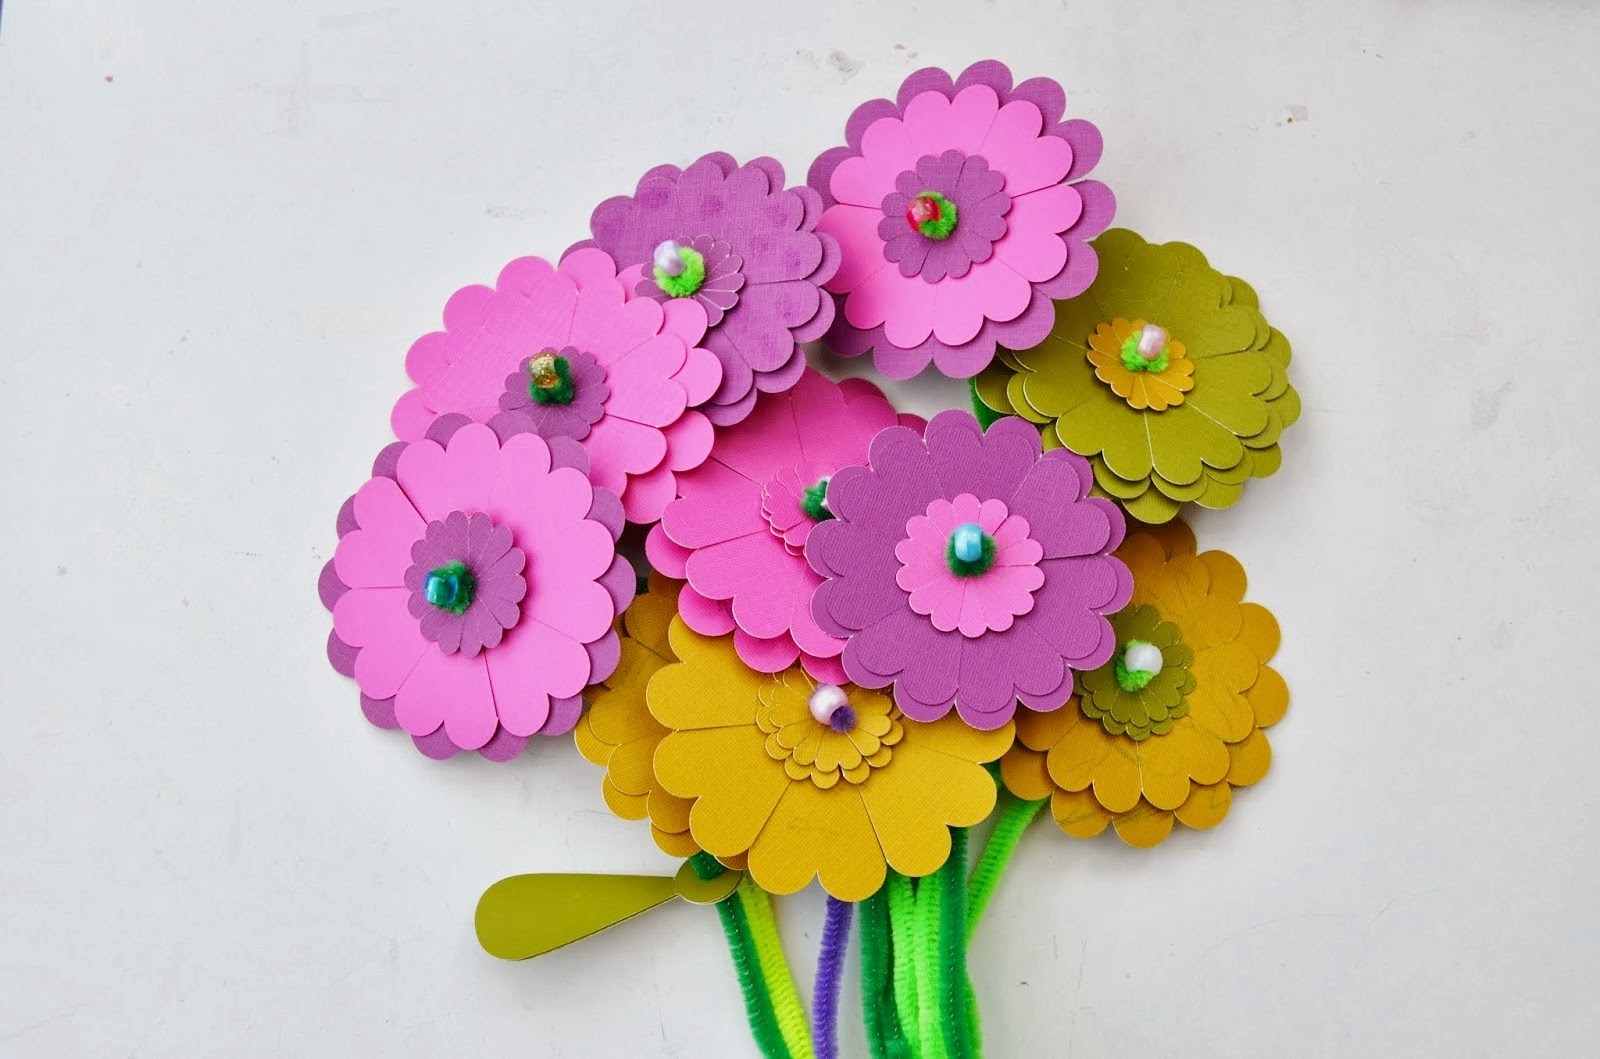 Flower from paper craft idealstalist snugglebug university paper flower craft kit mightylinksfo